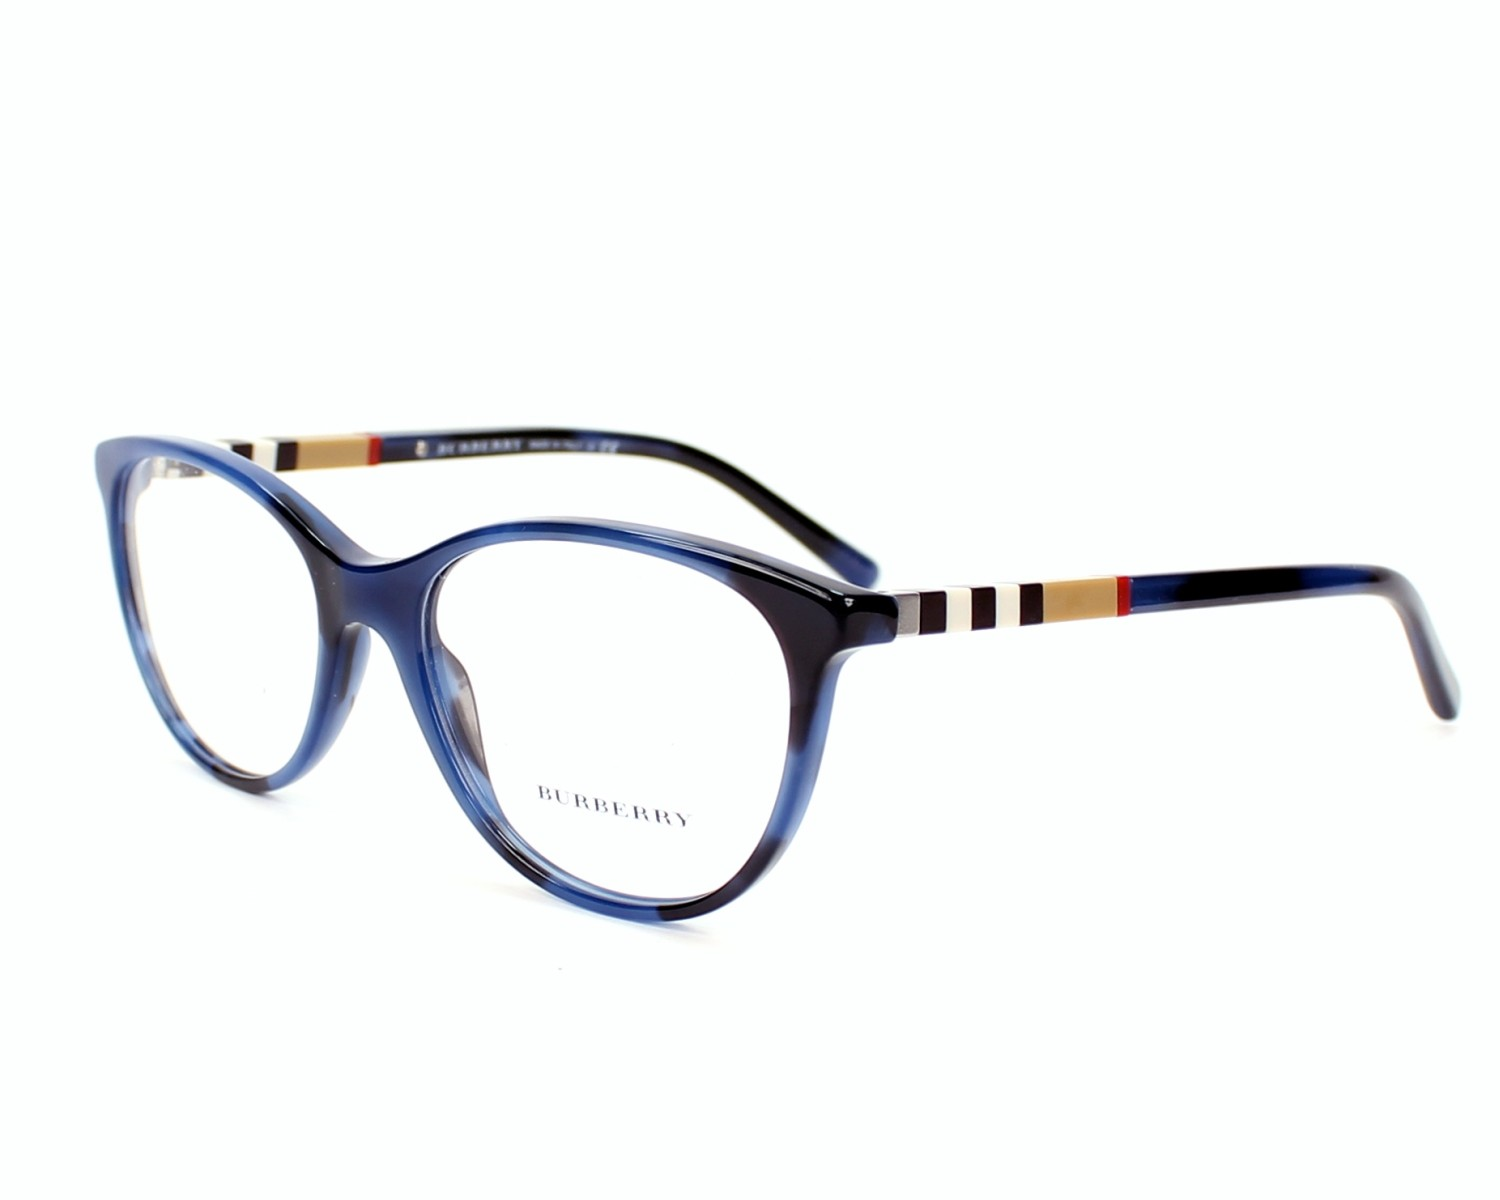 eyeglasses Burberry BE-2205 3546 - Blue profile view 2e3ef6637095